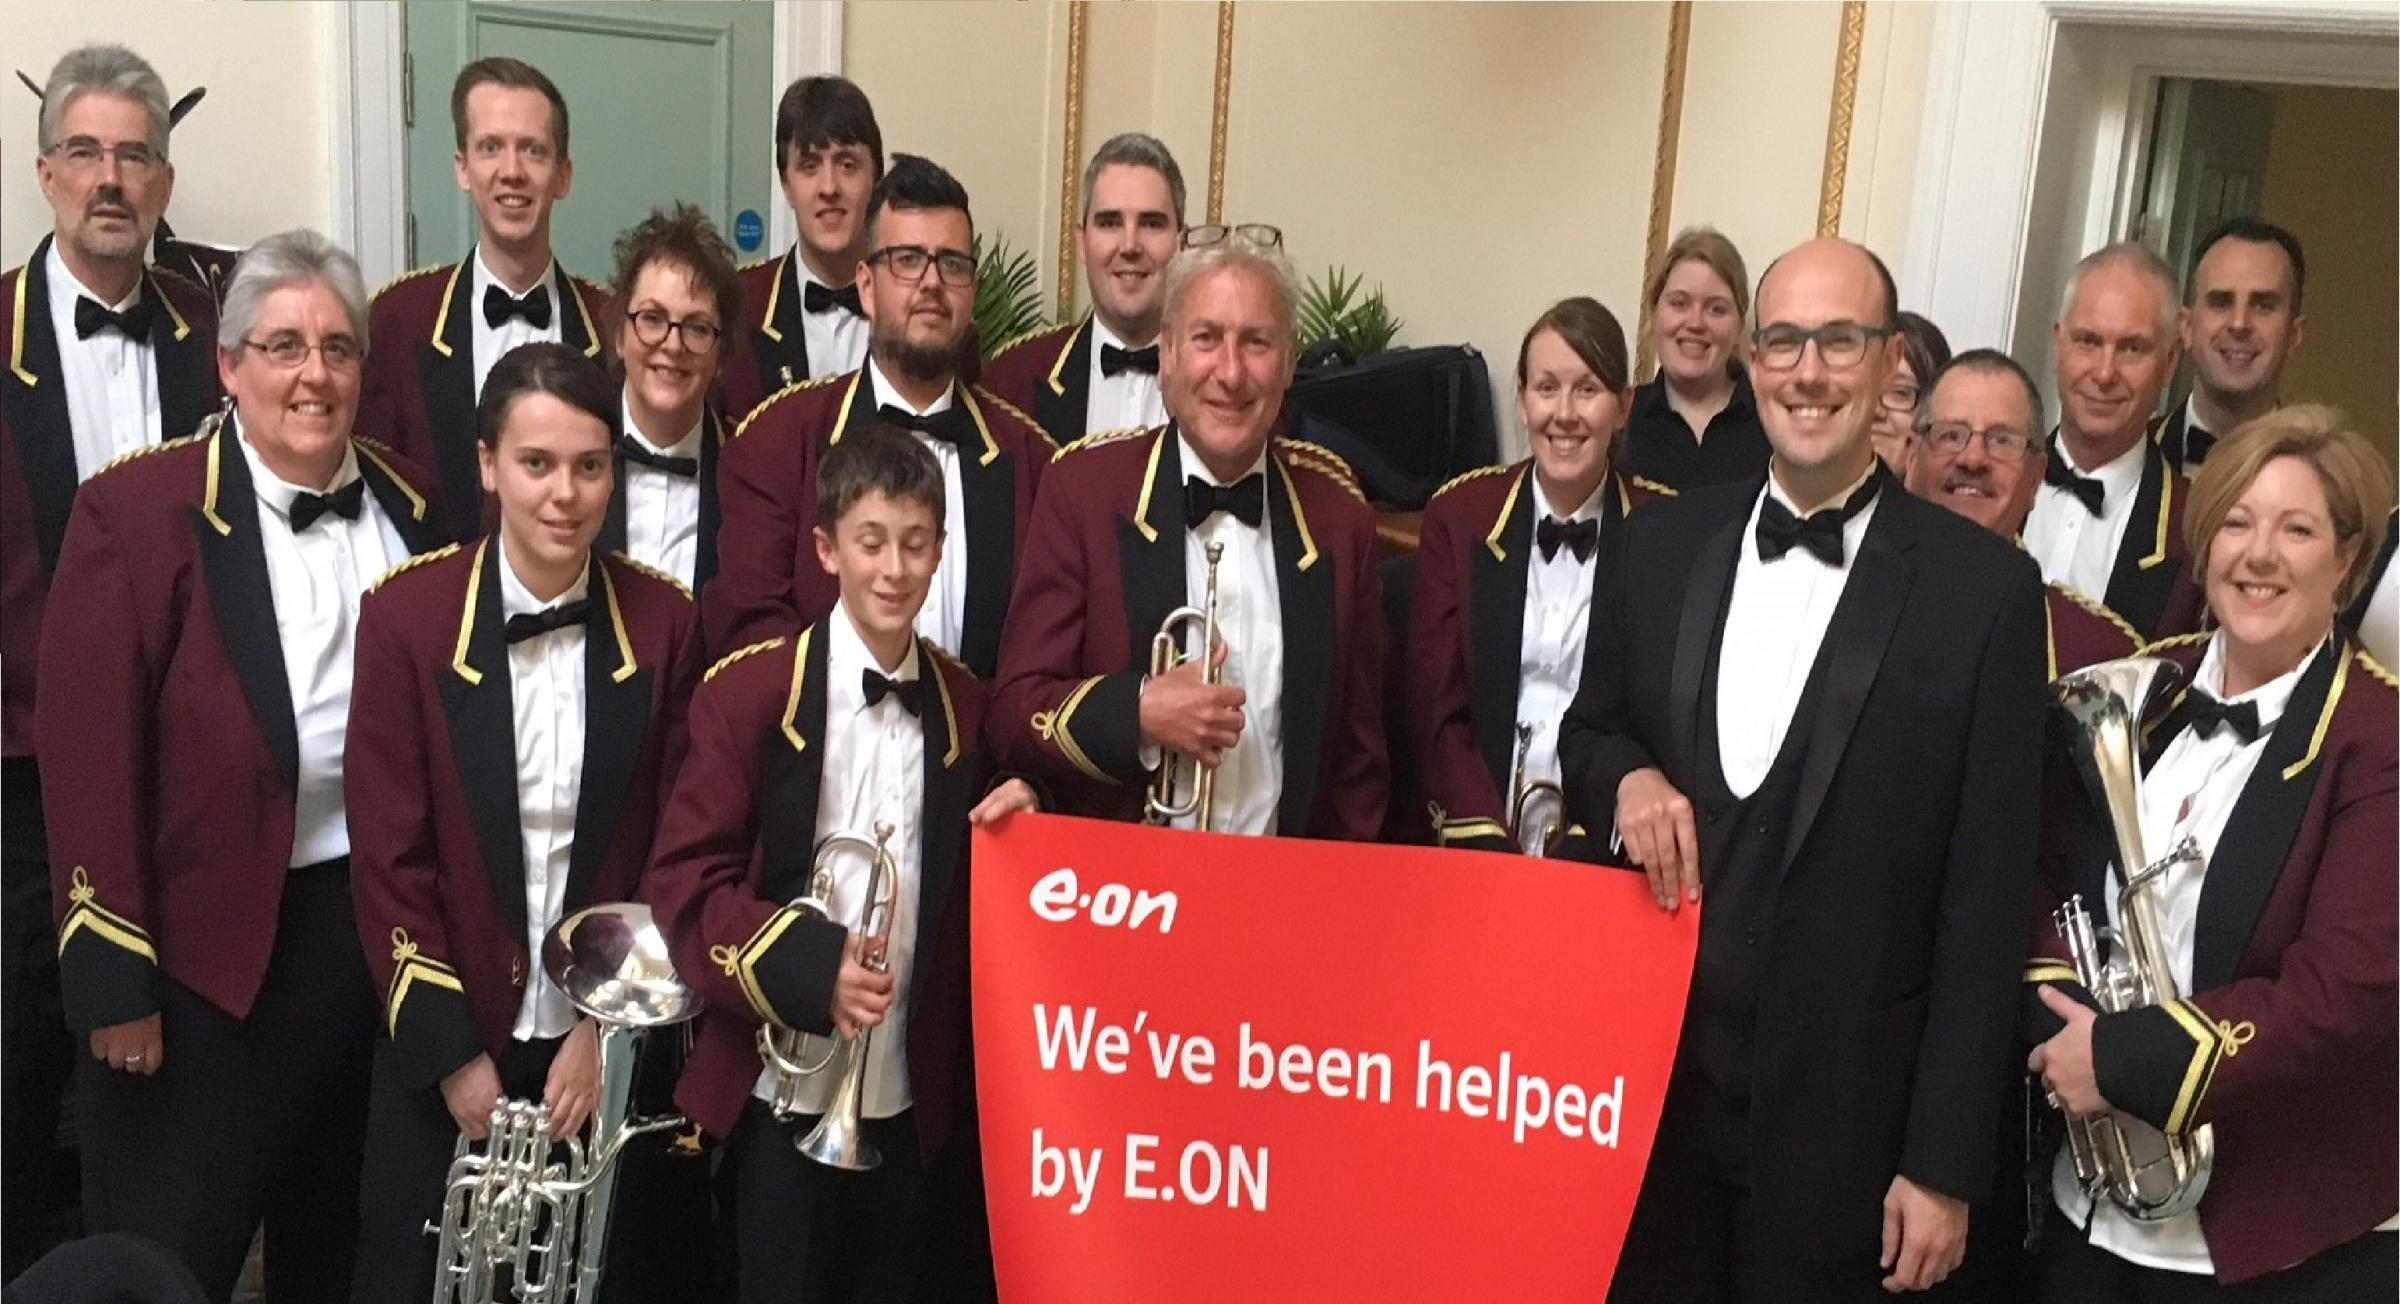 Pontarddulais Town Band celebrate recieving a grant from E.ON's Energising Communitieis Fund